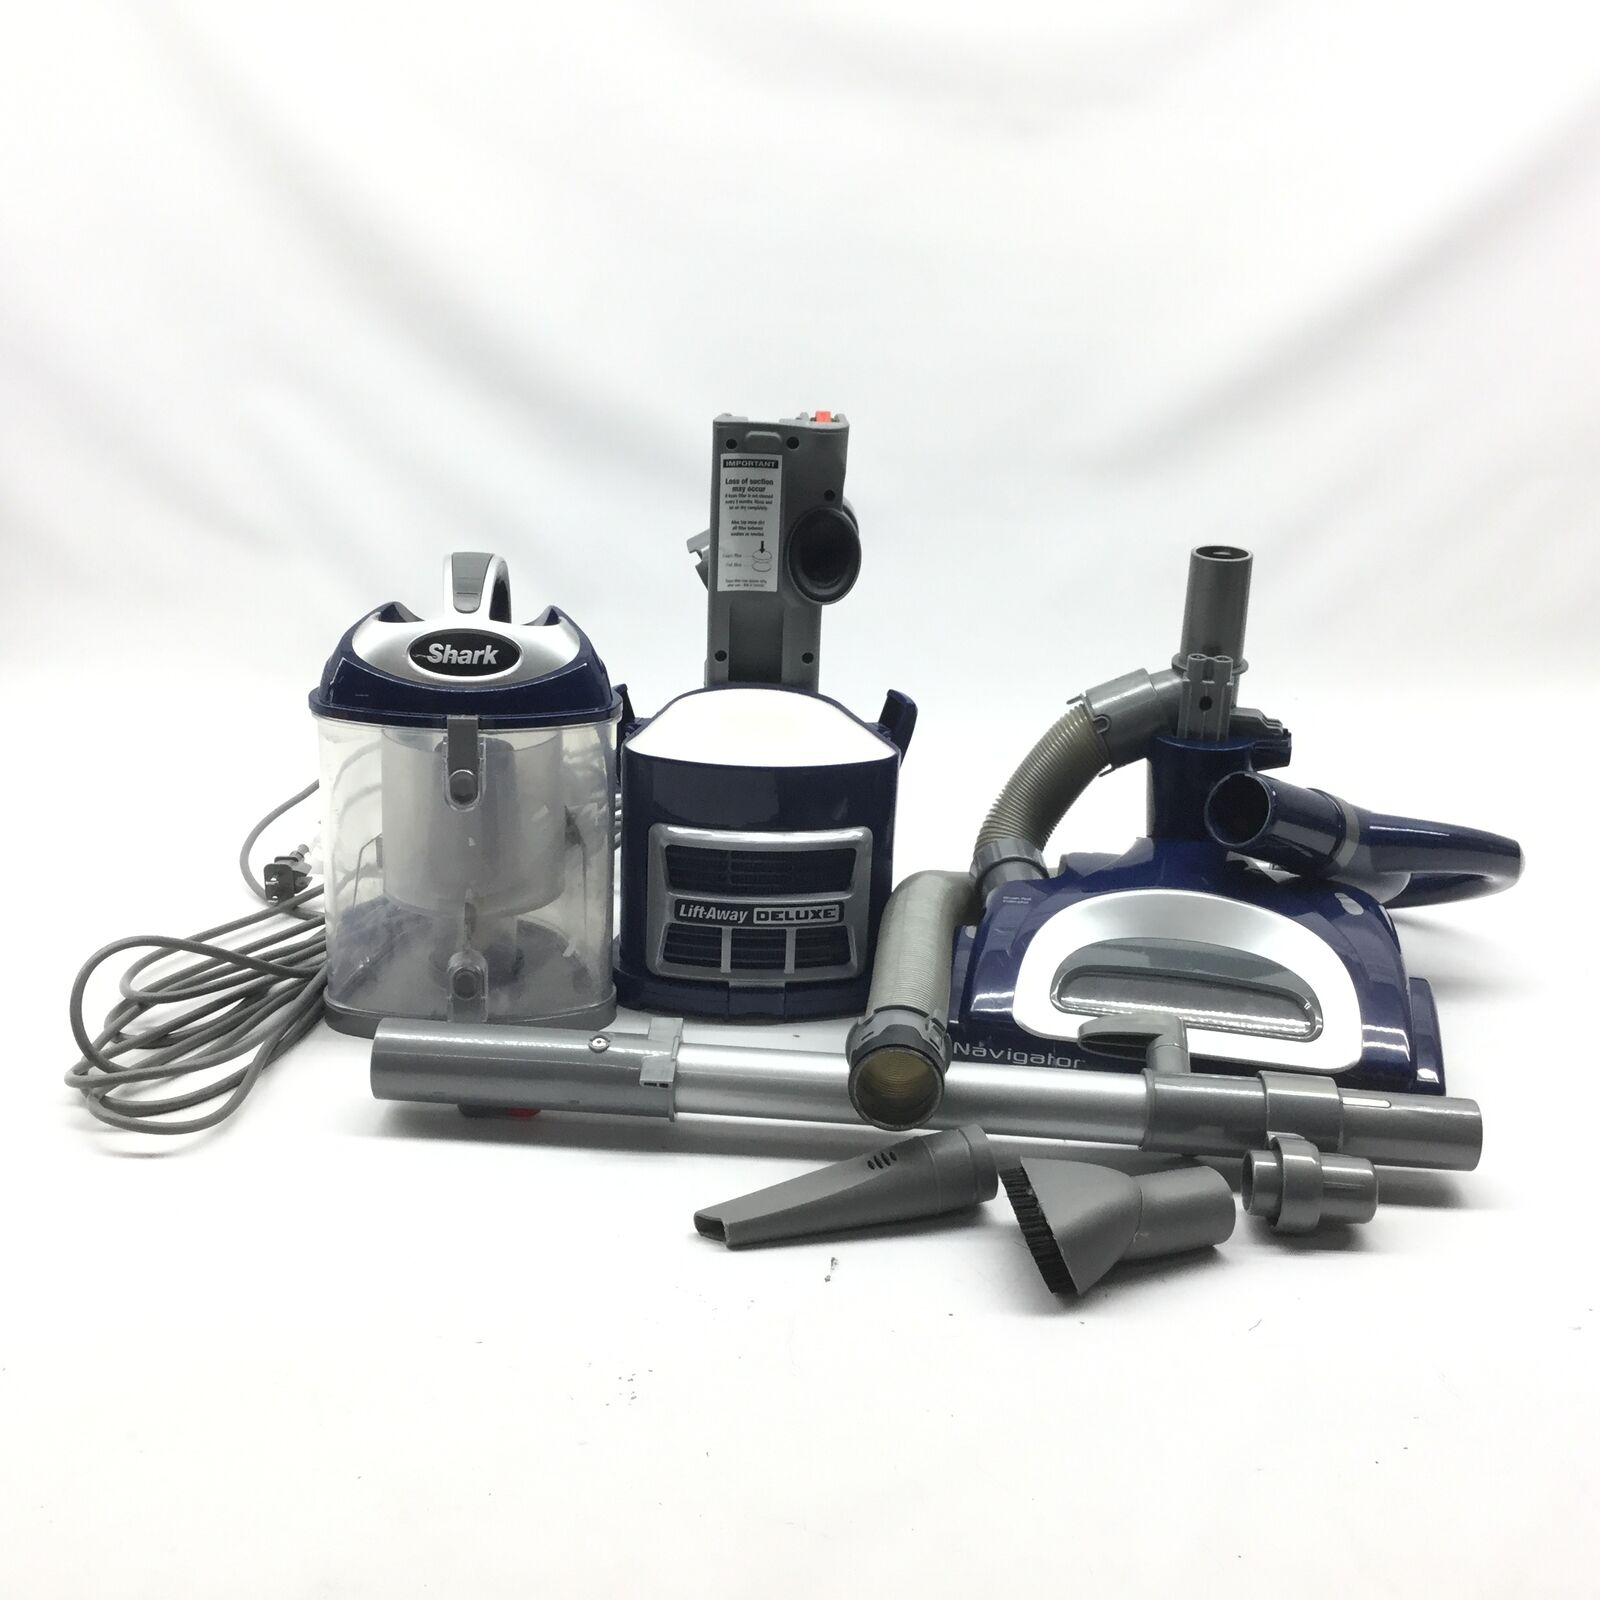 shark-navigator-lift-away-deluxe-nv360-upright-vacuum-blue